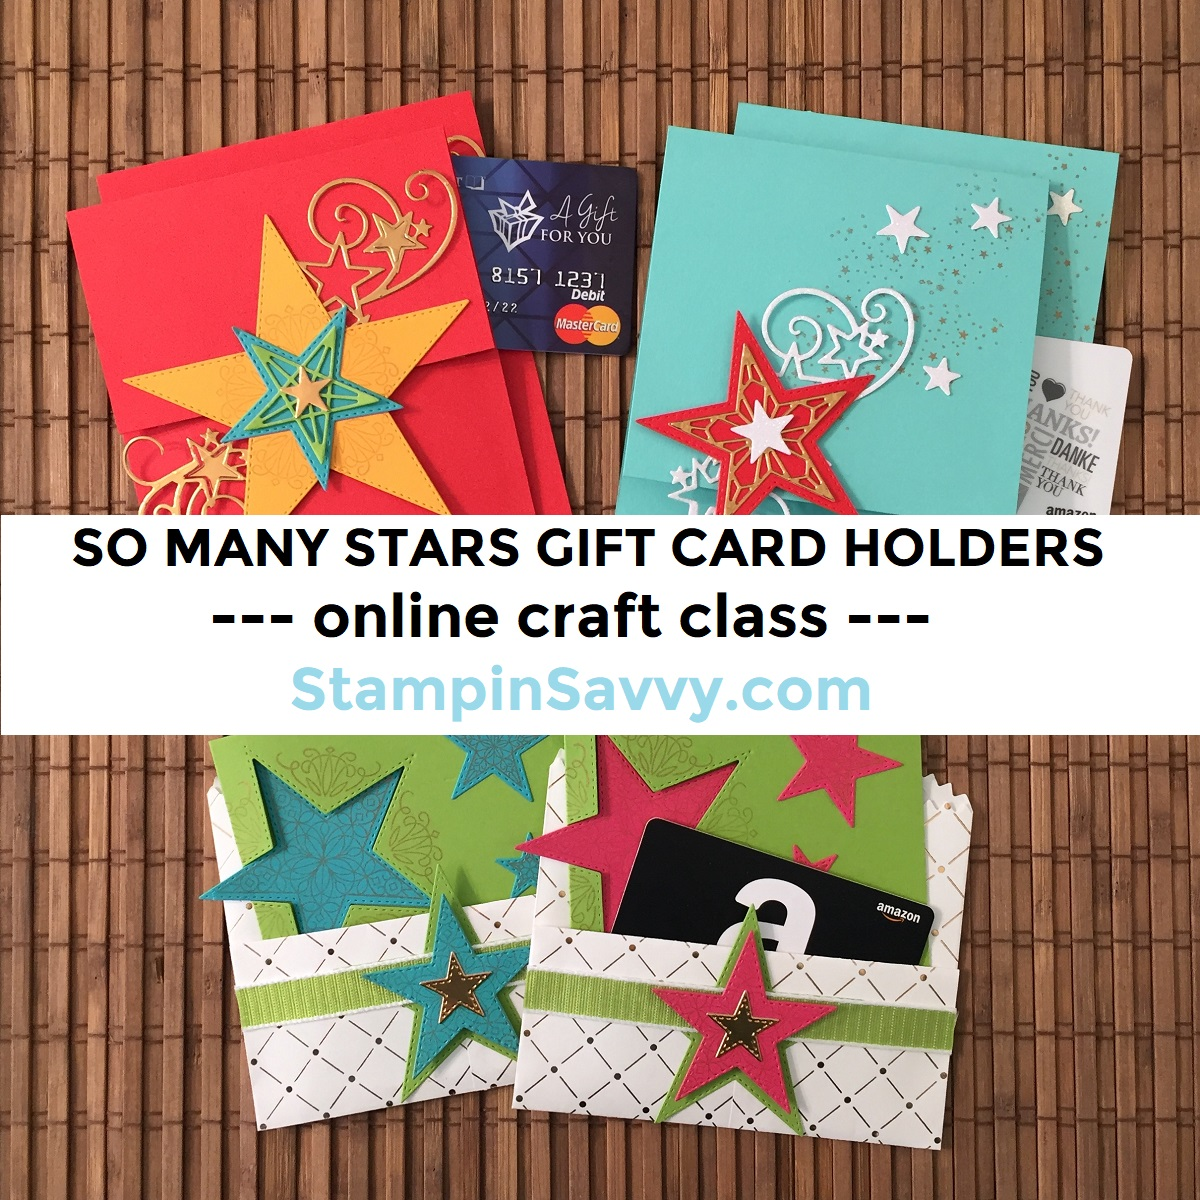 SO-MANY-STARS-GIFT-CARD-HOLDERS-CRAFT-CLASS-1-TAMMY-BEARD-STAMPIN-SAVVY-STAMPIN-UP